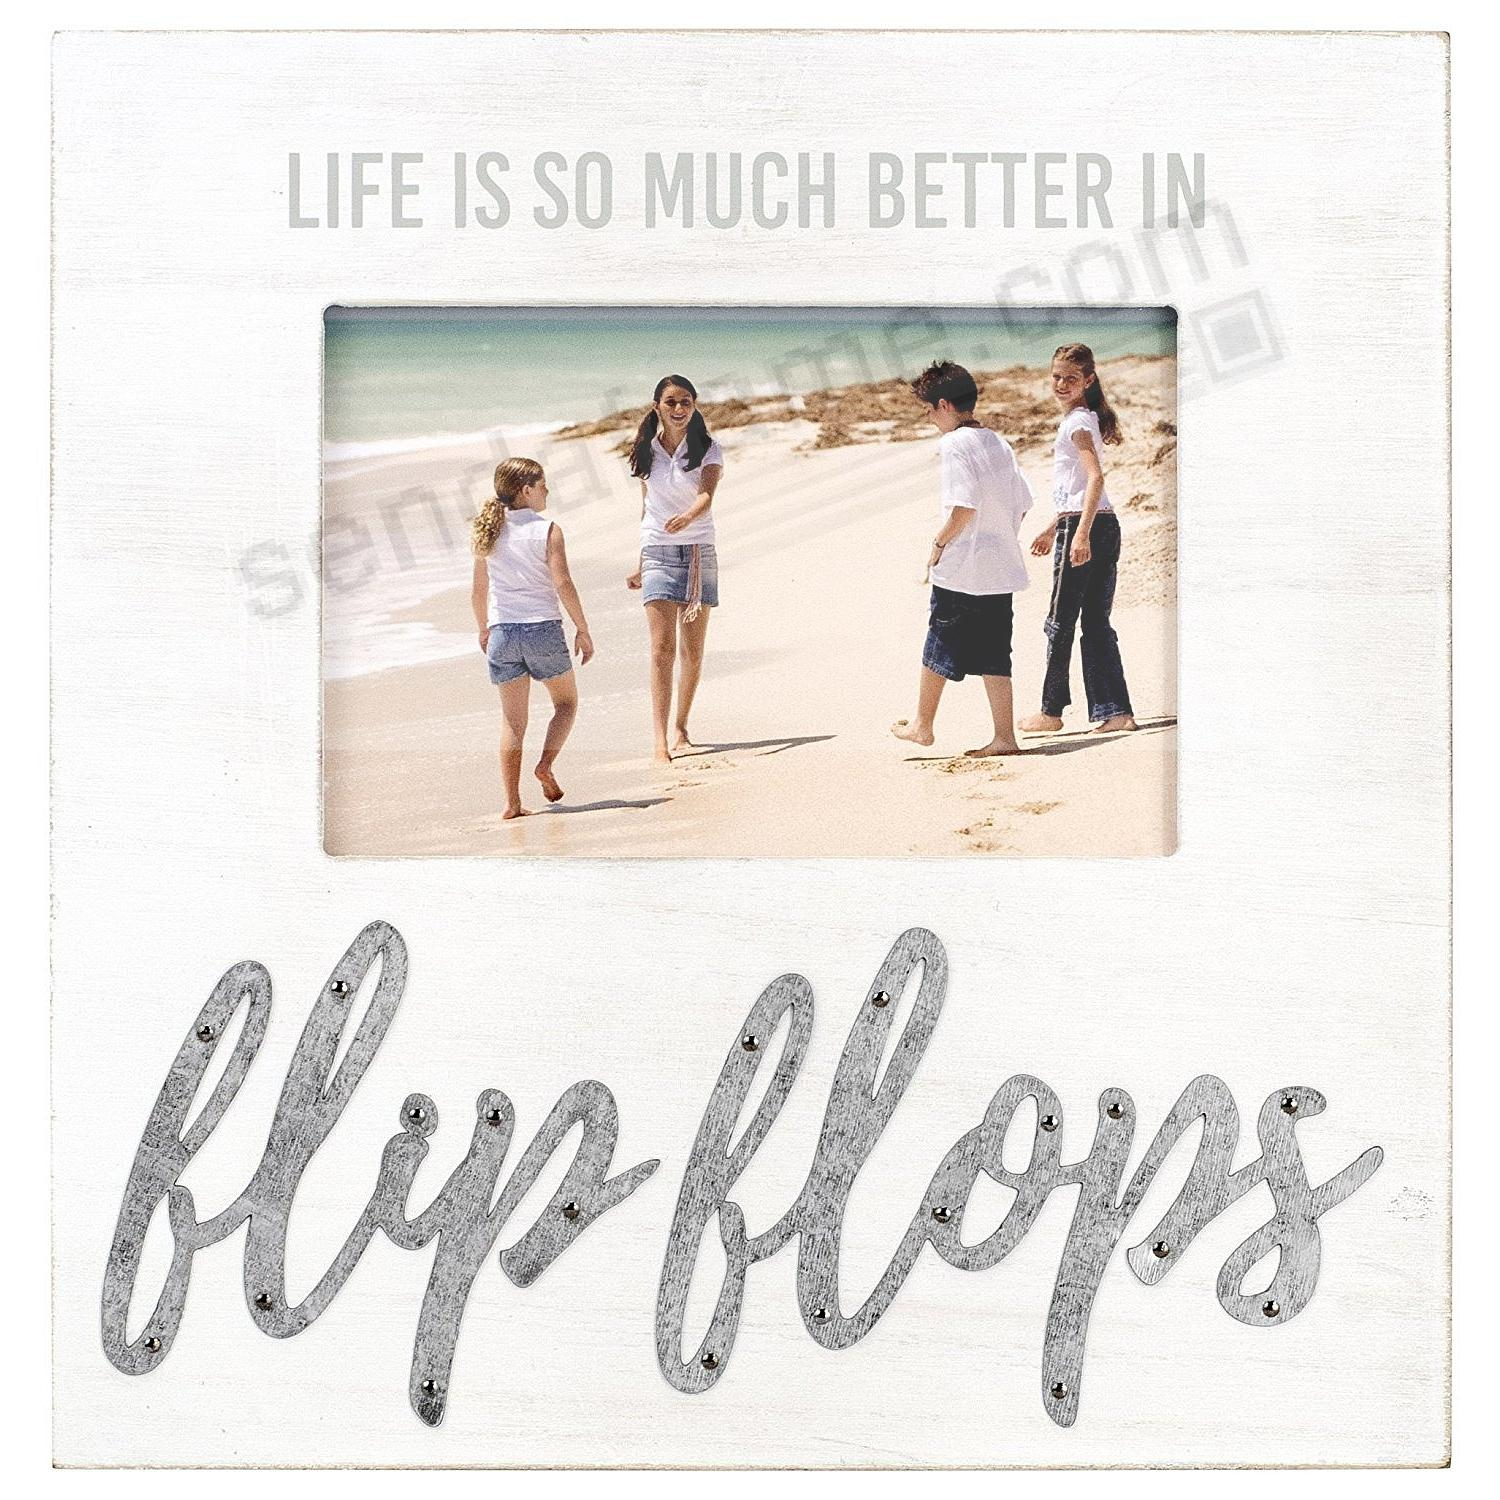 LIFE IS BETTER IN FLIP FLOPS 4x6 Frame by Malden®